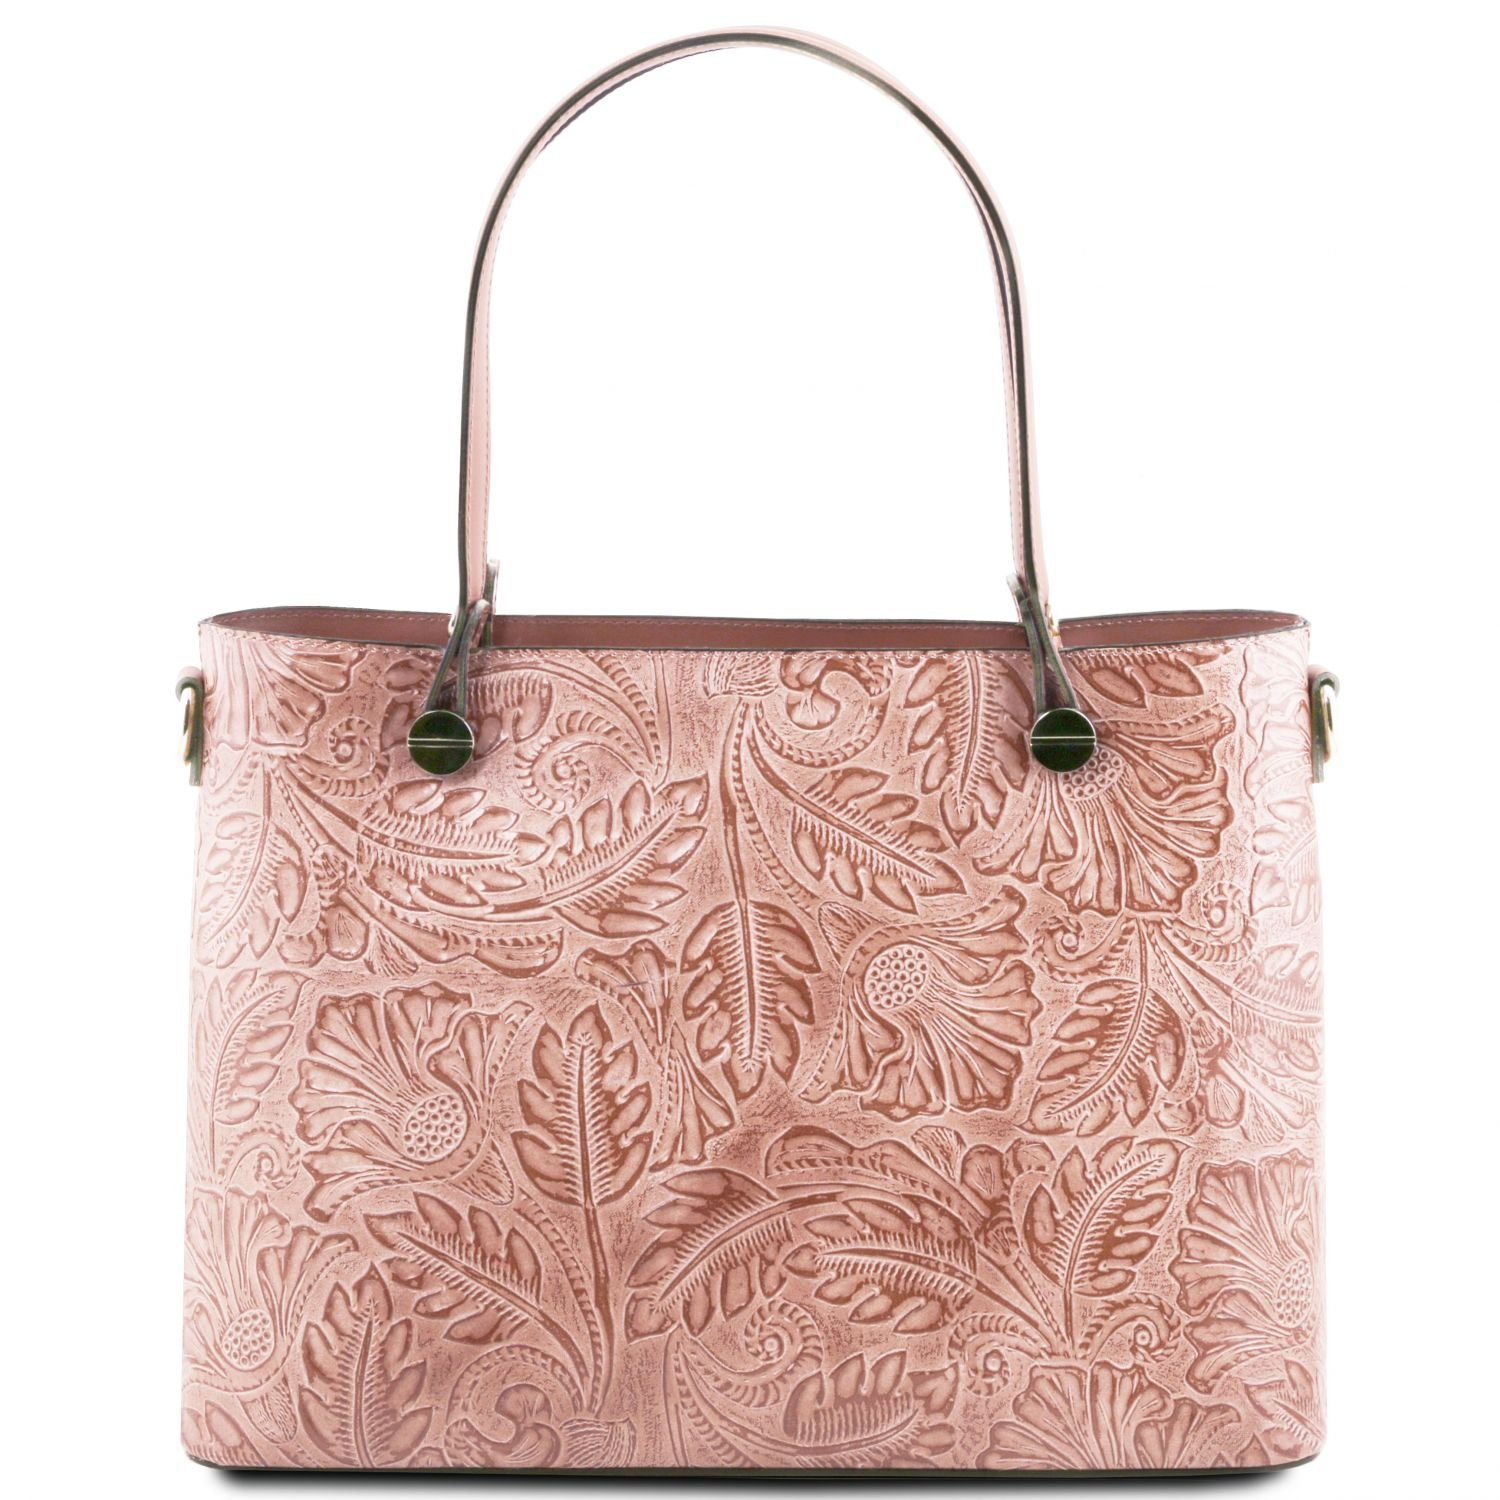 Tuscany Leather Atena Leather shopping bag with floral pattern Nude